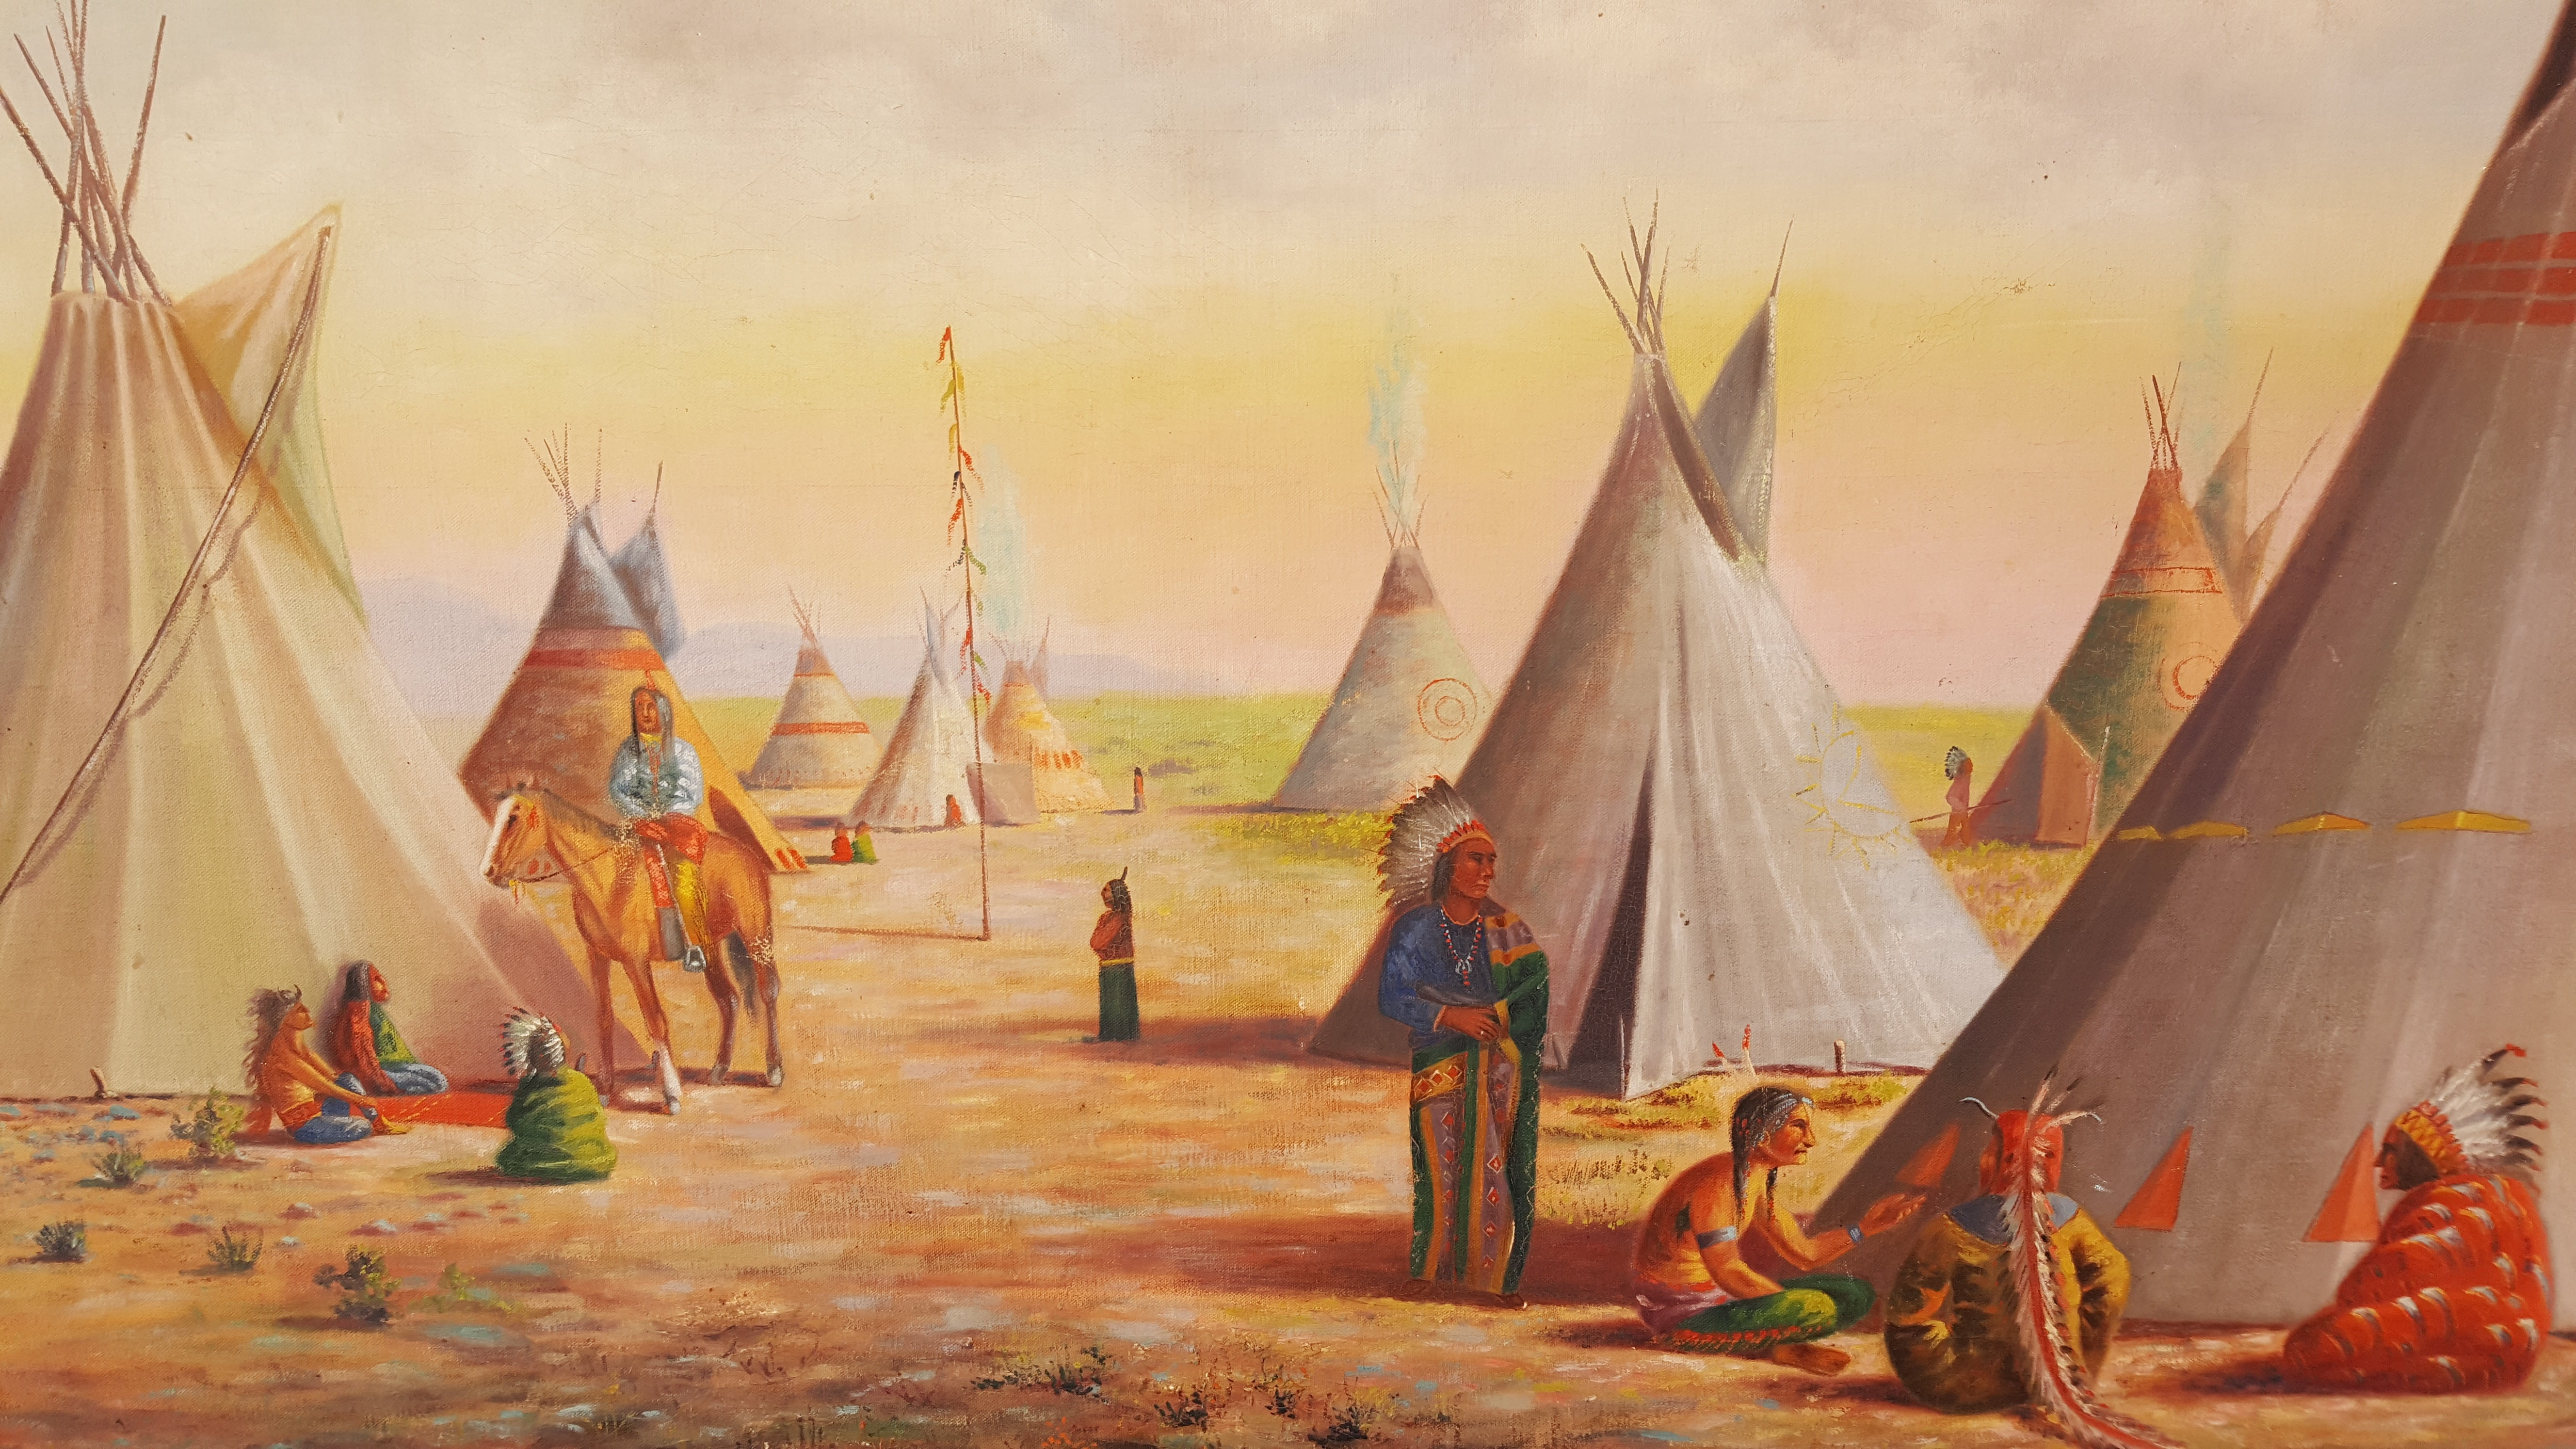 Large Oil Painting of Native American Indian Village For Sale at 1stdibs